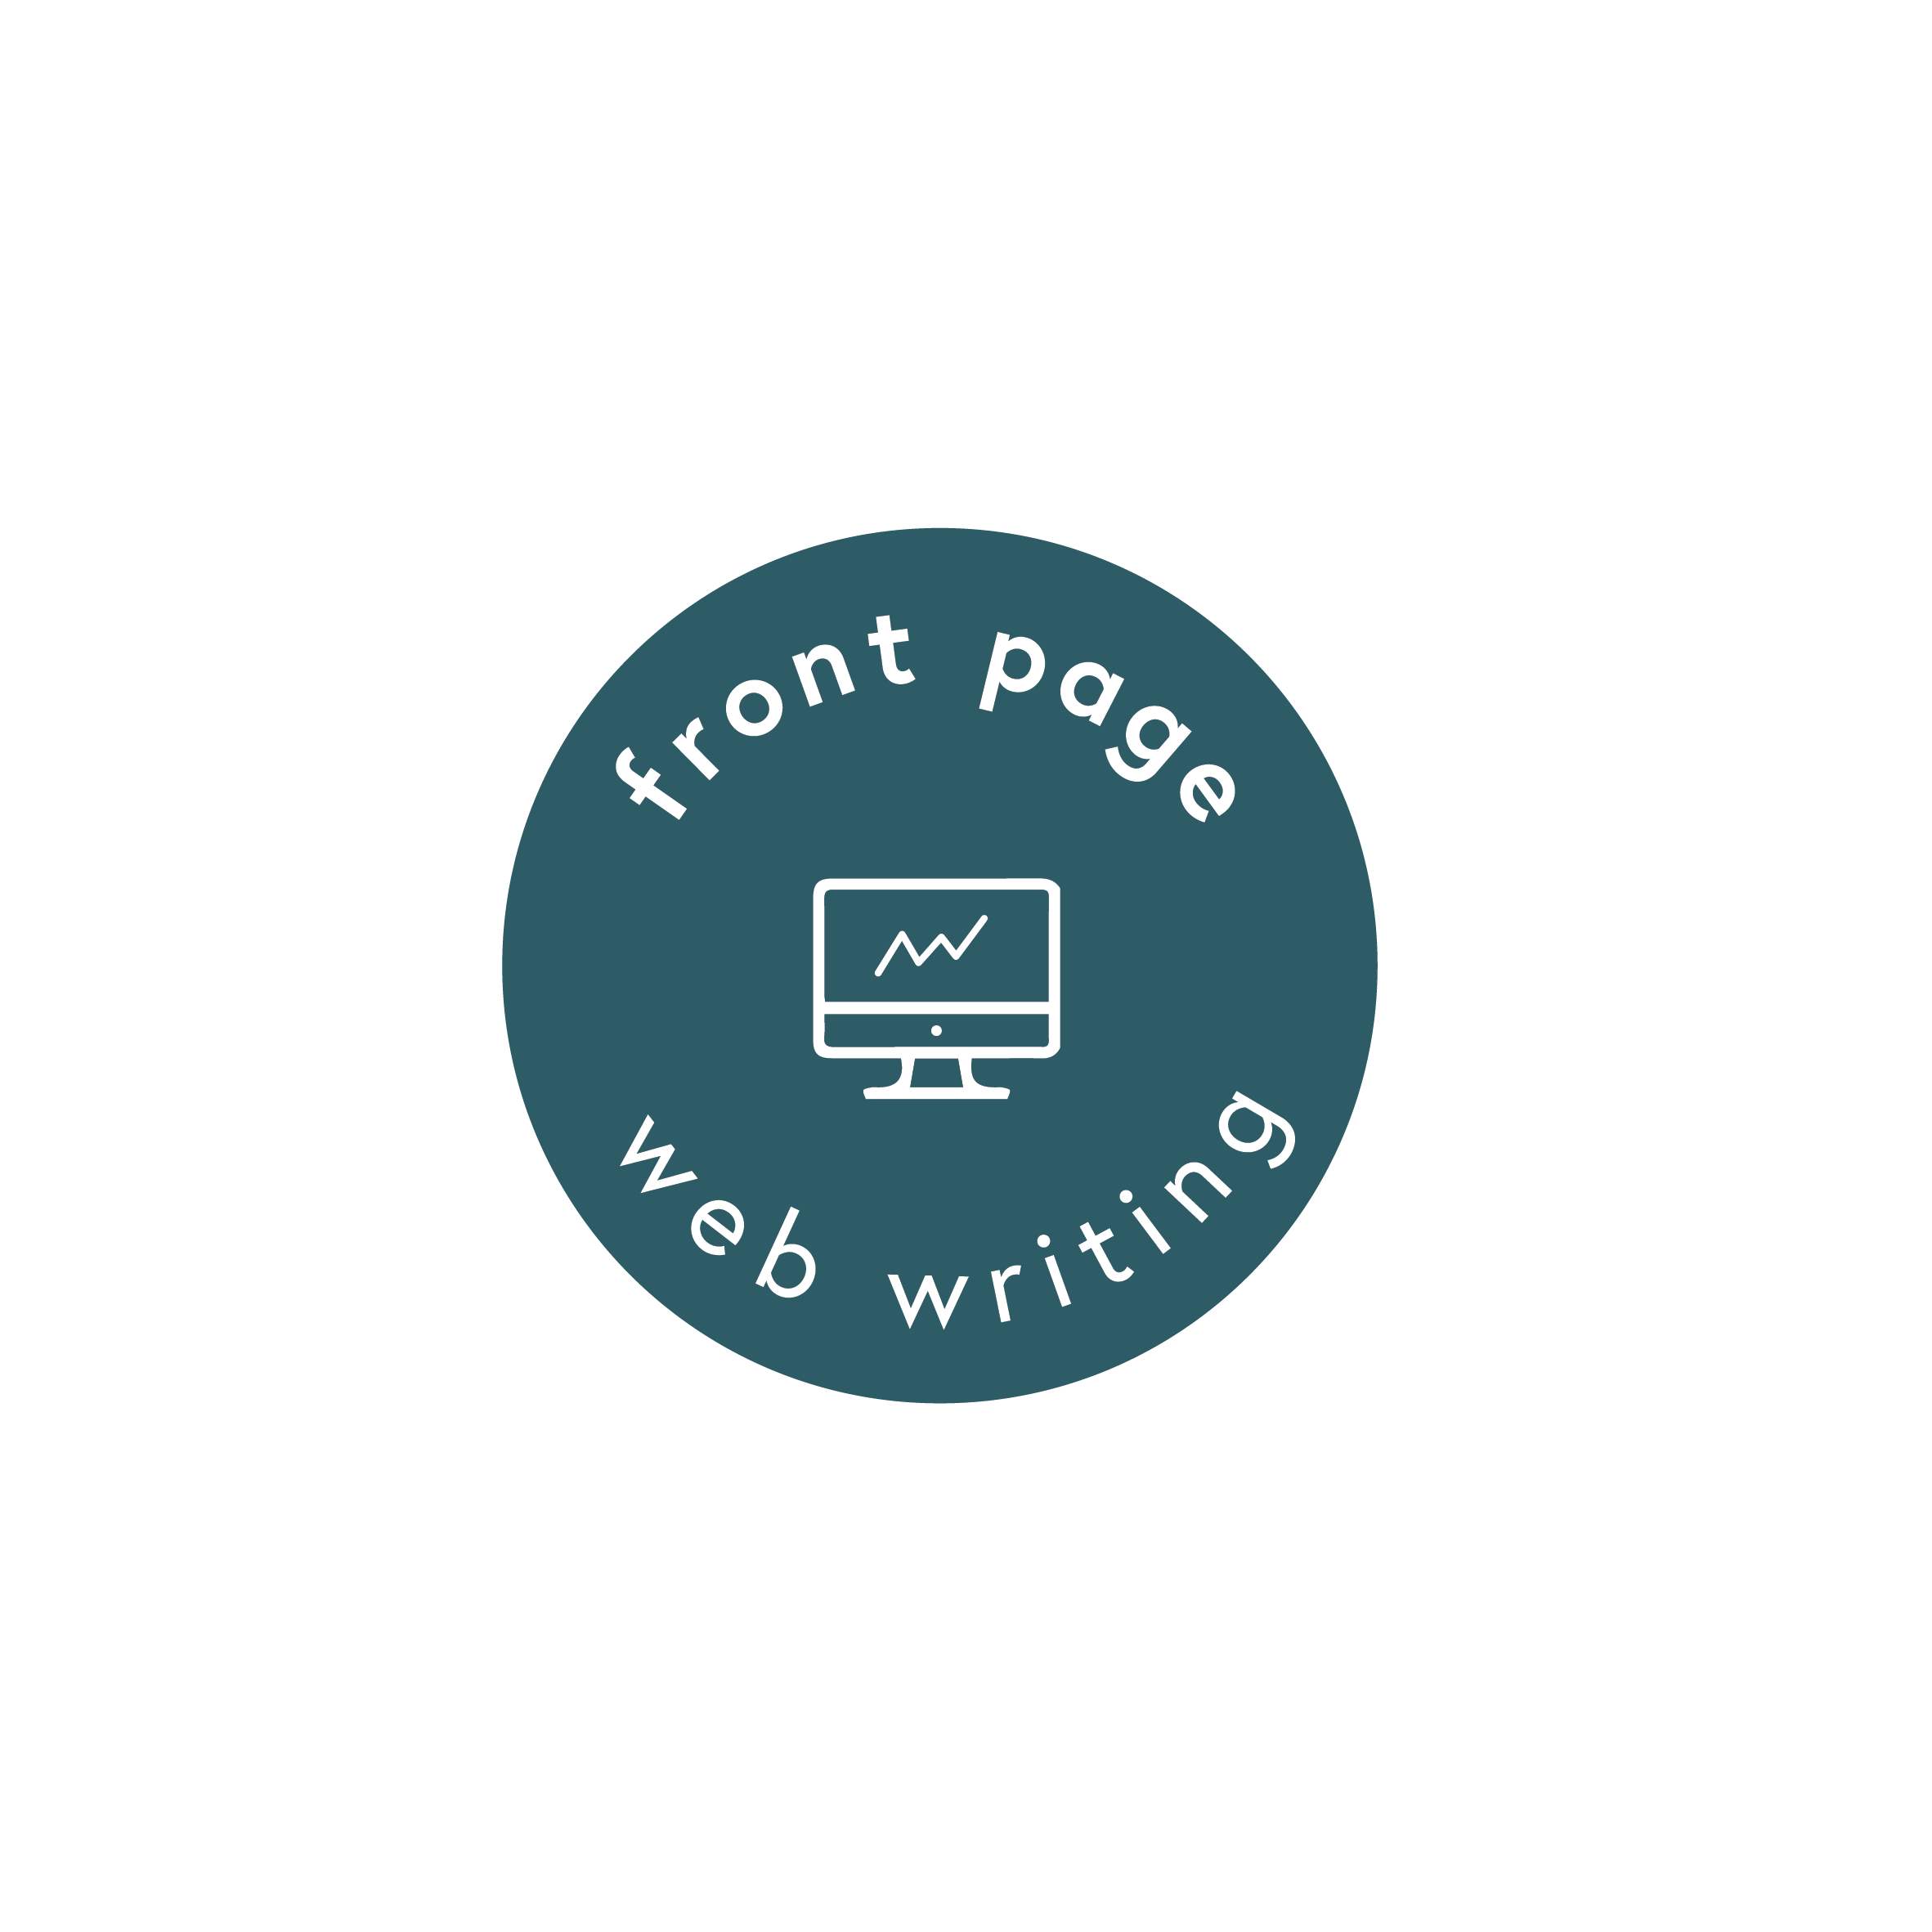 Front Page Web Writing Final Logos-03.png